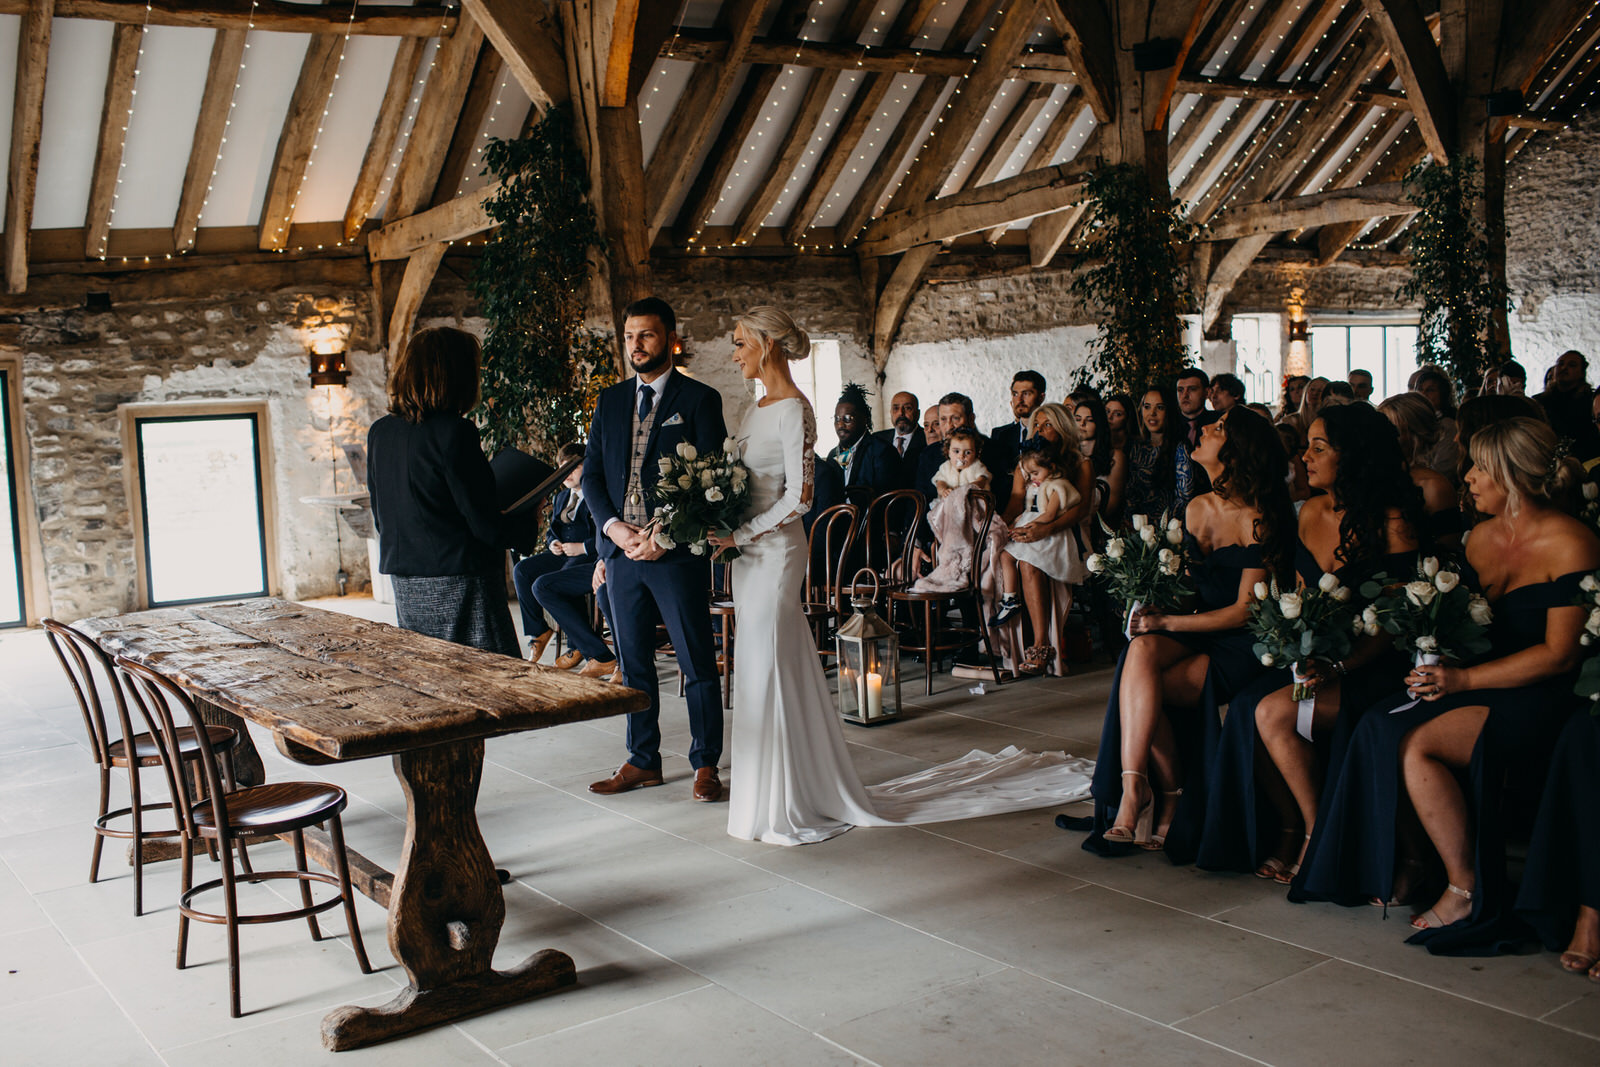 Tithe Barn - Unfurl Photography - 7.4.19 - Stephanie & Jonny - -13the+tithe+barn+bolton+abbey+wedding+venue.jpg